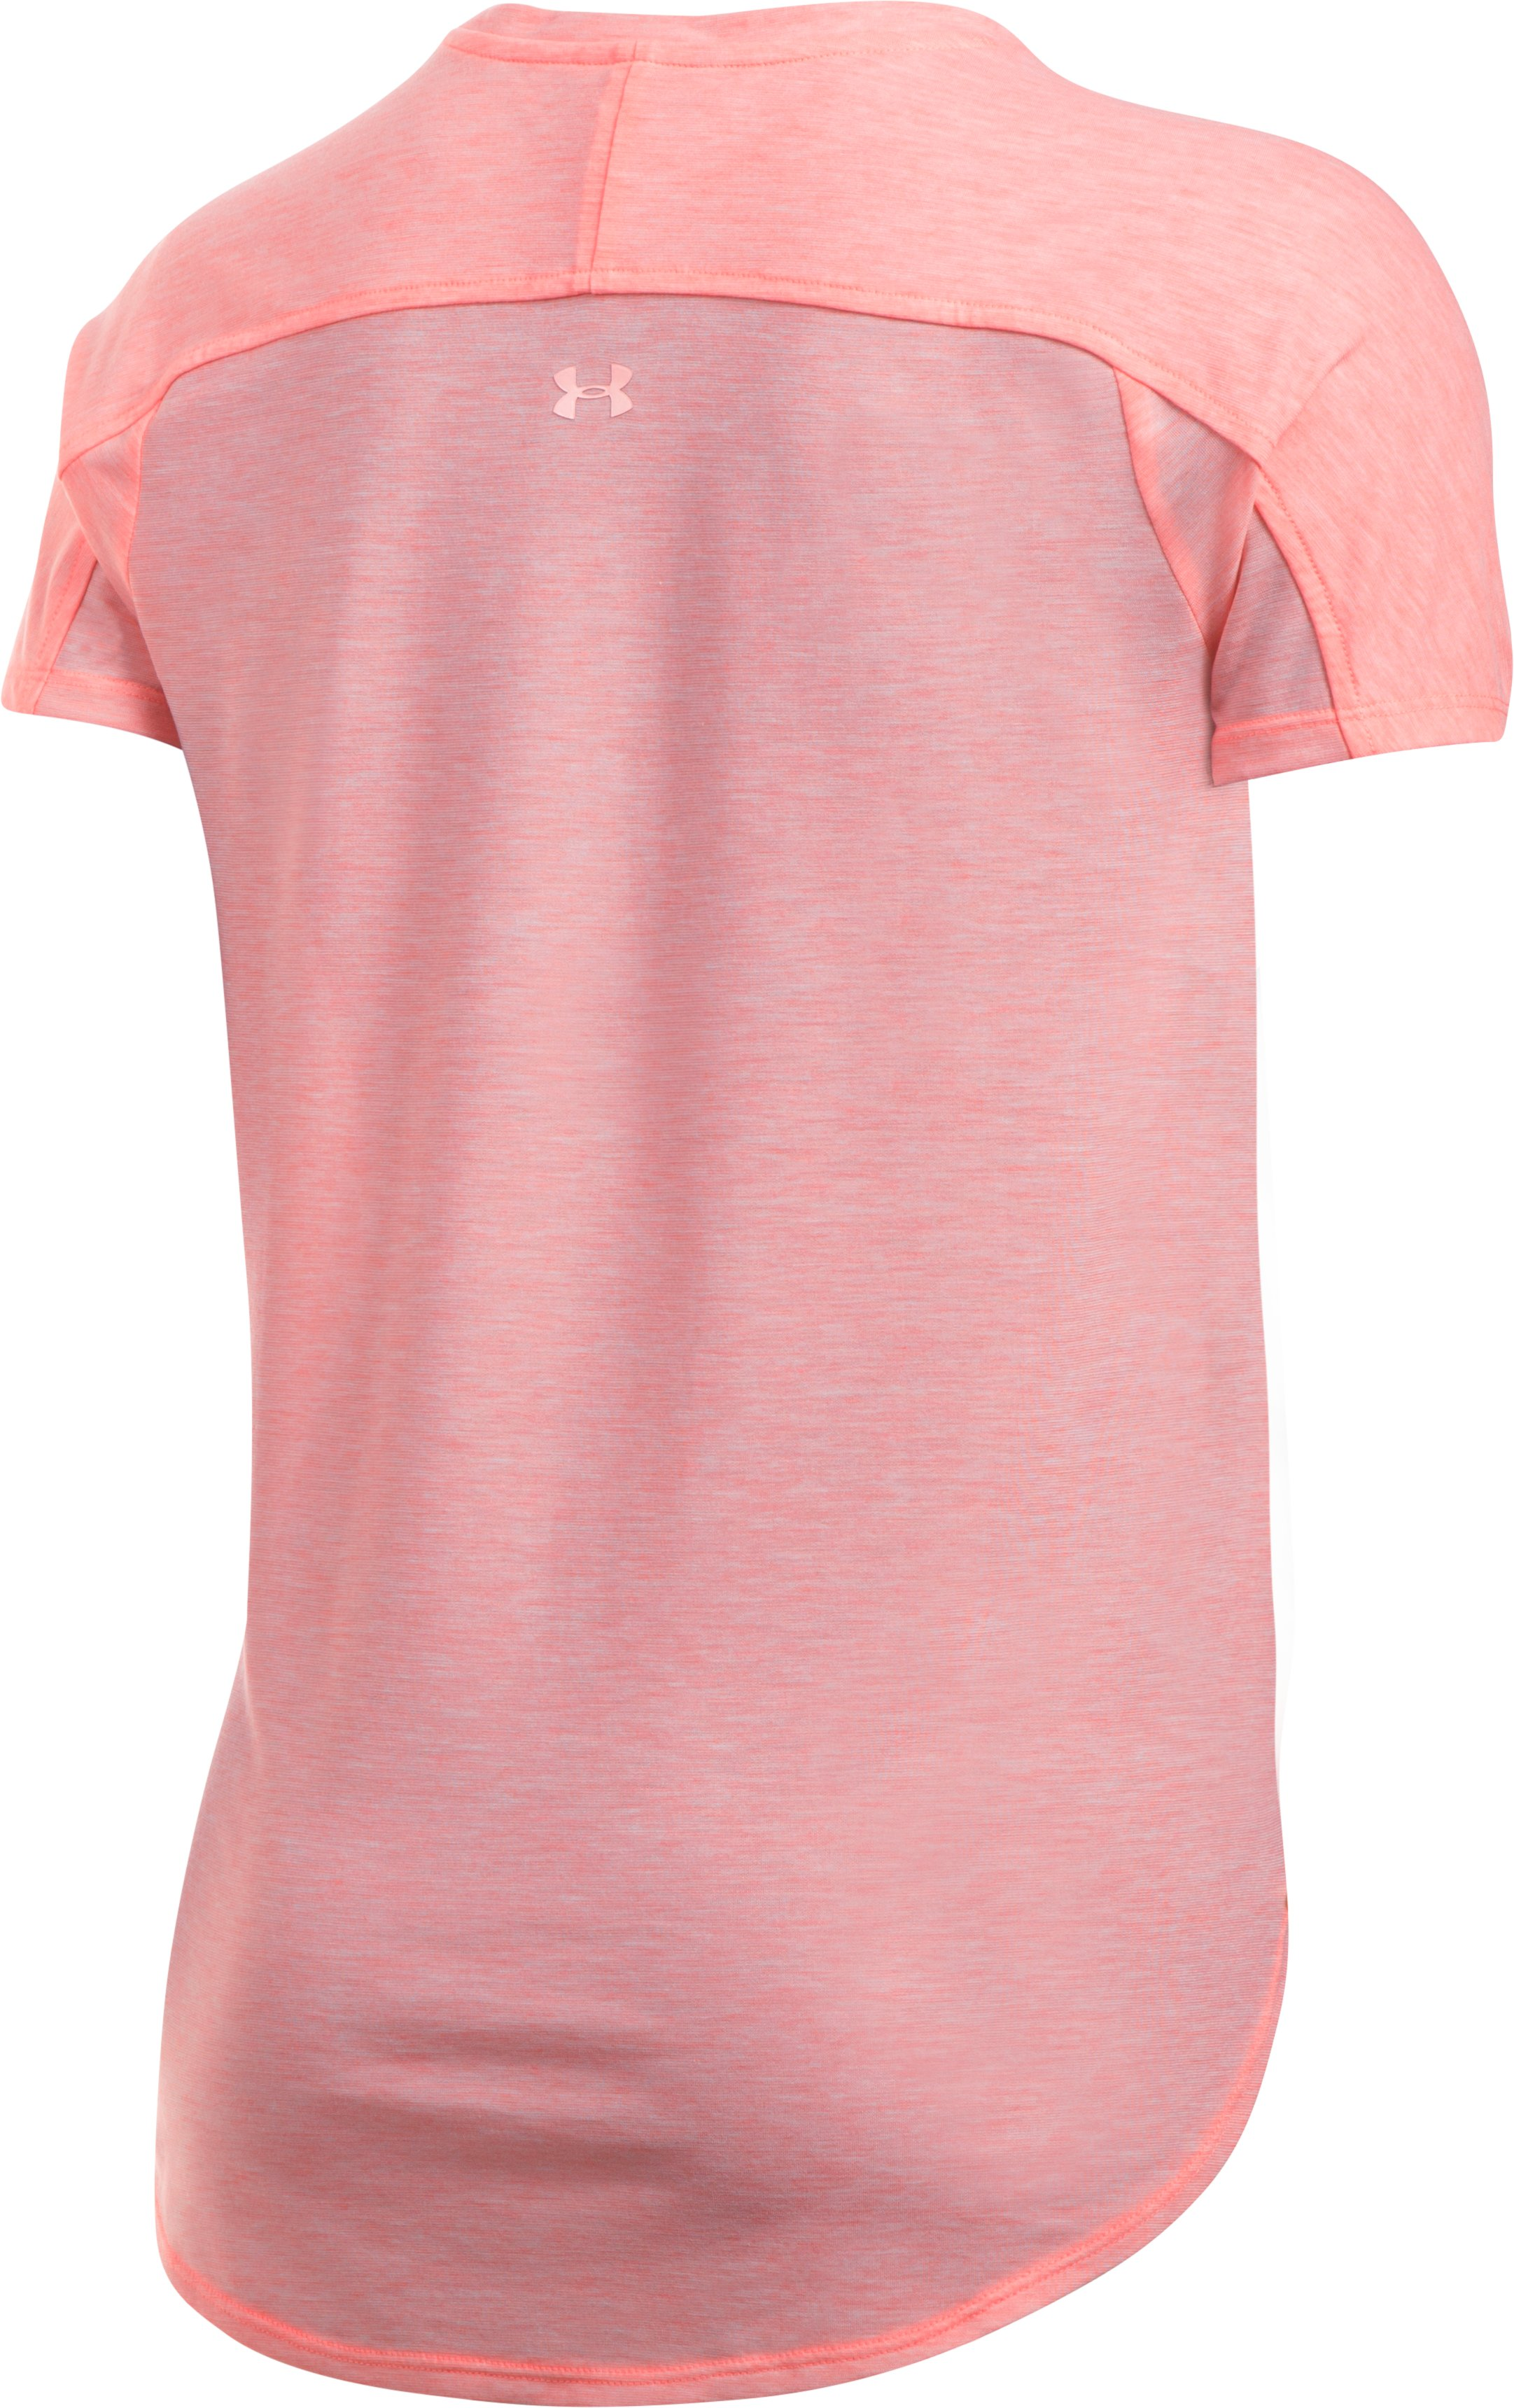 Women's UA Breathe Short Sleeve Top, CAPE CORAL FADE HEATHER, undefined